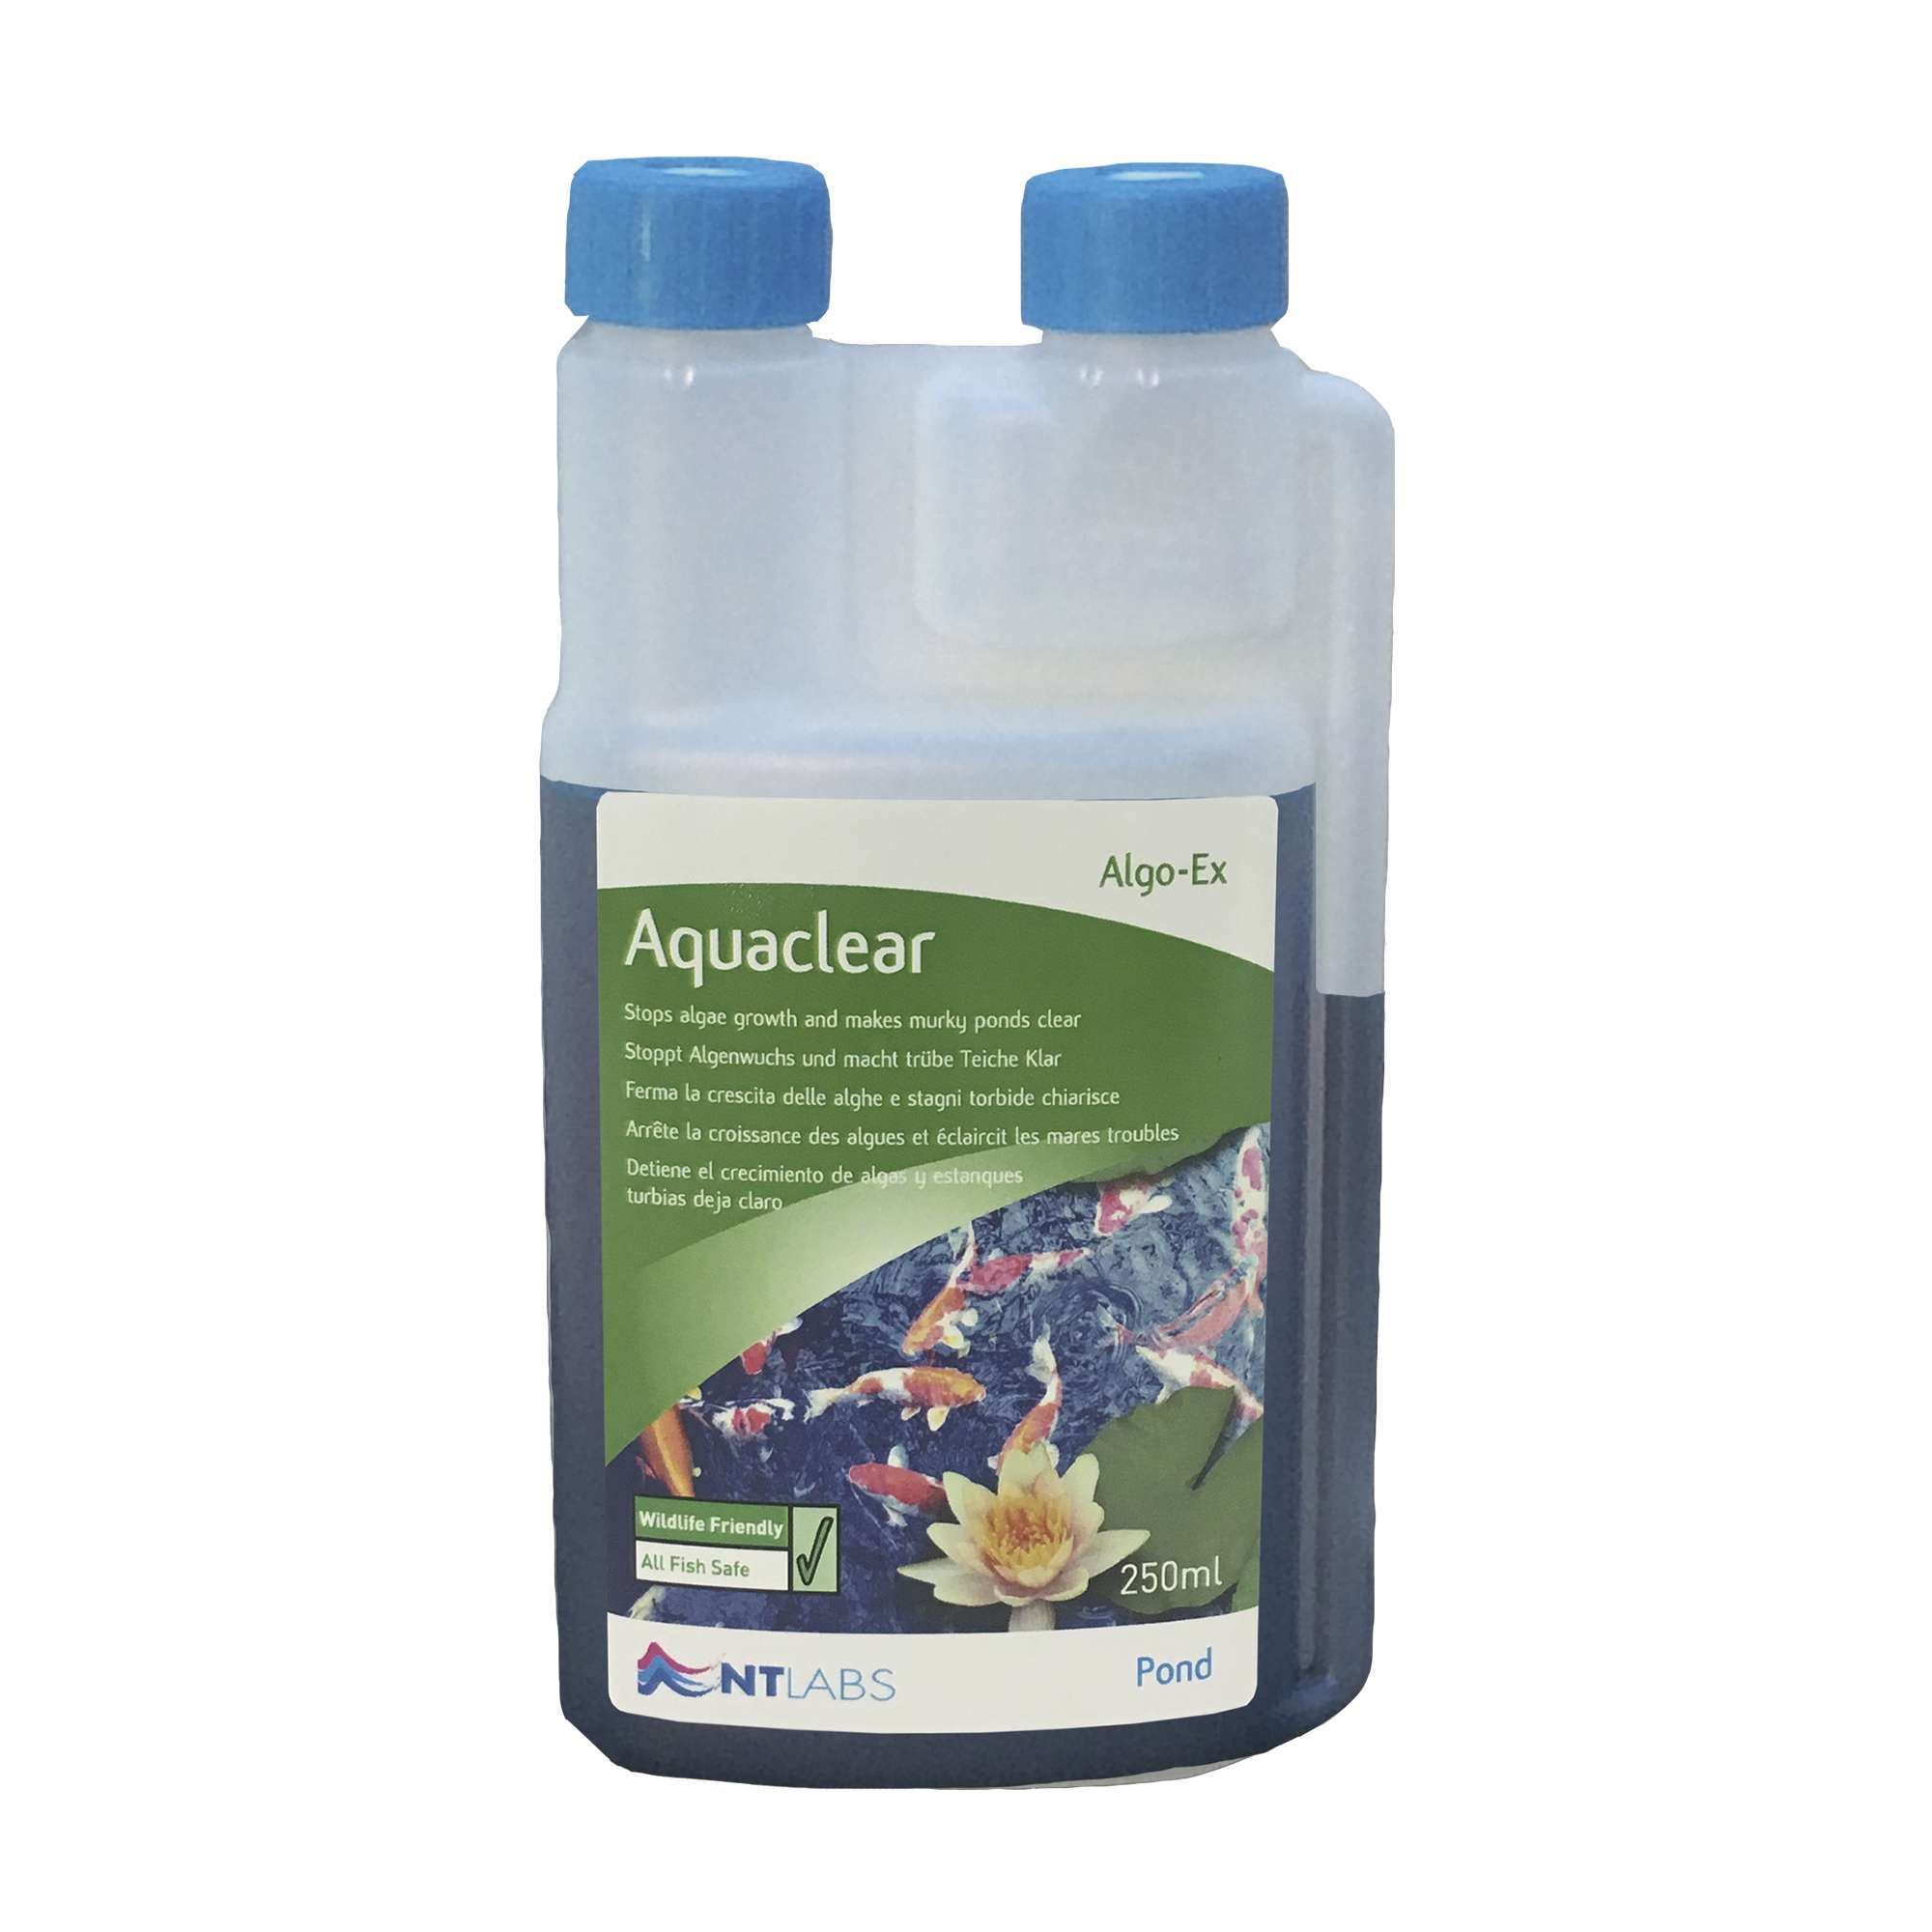 acondicionador-aquaclear-de-ntlabs-250-ml_antialgas_estanques_filtro_solar_algas